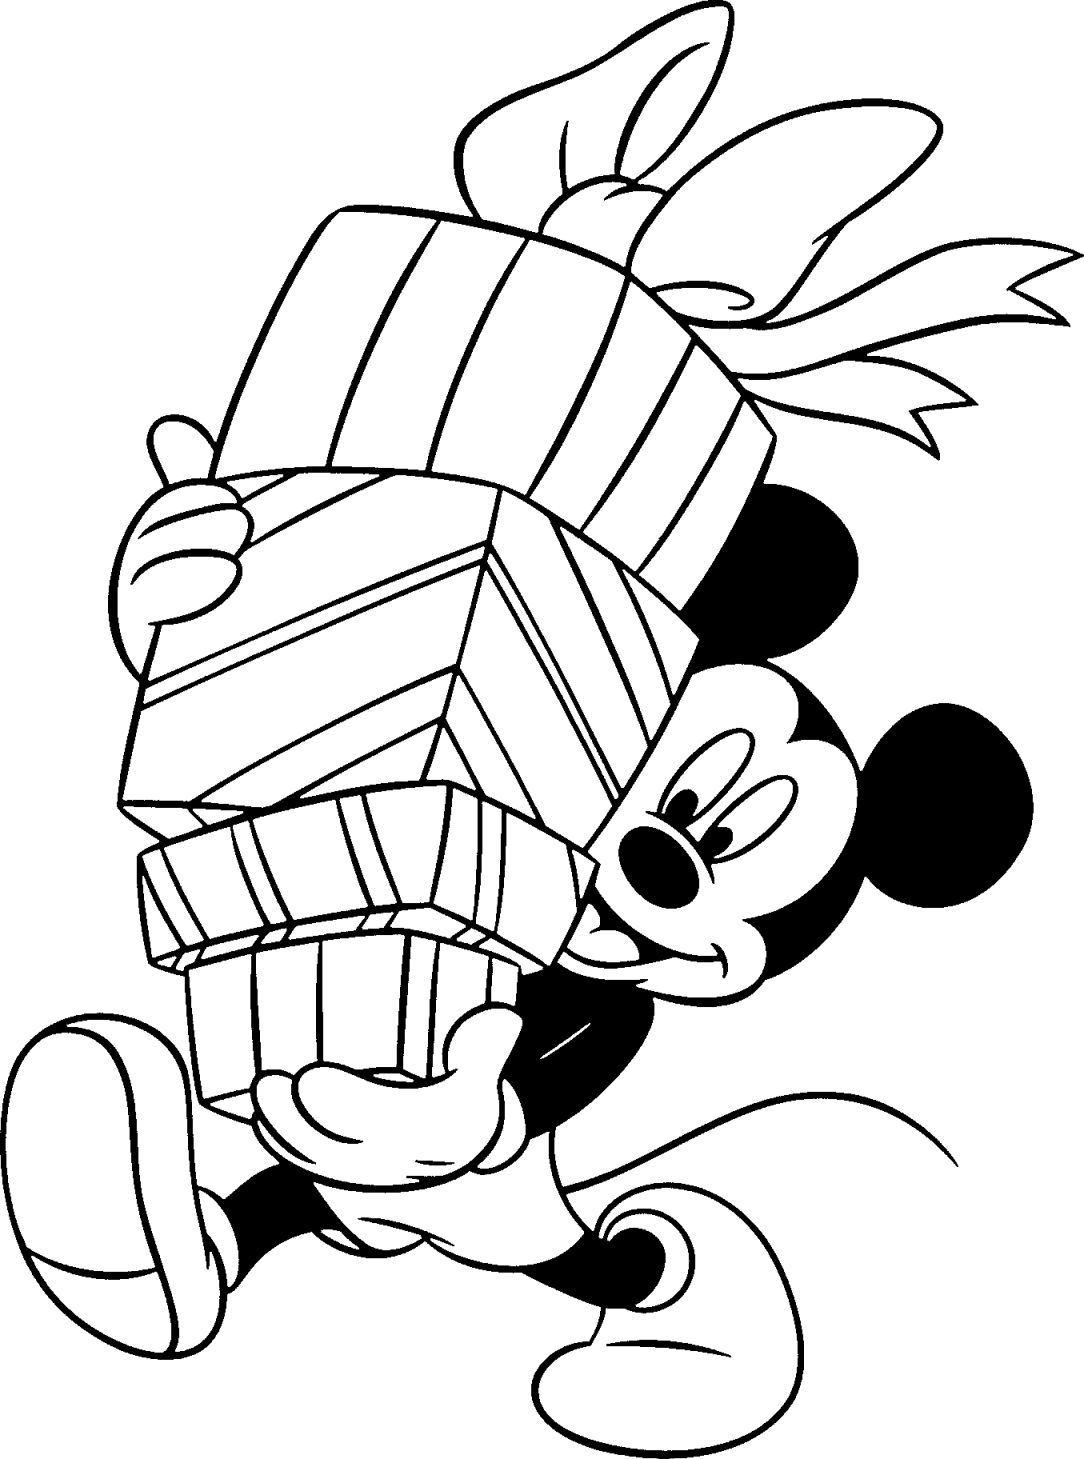 Disney Christmas Coloring Pages Disney christmas Disney colors